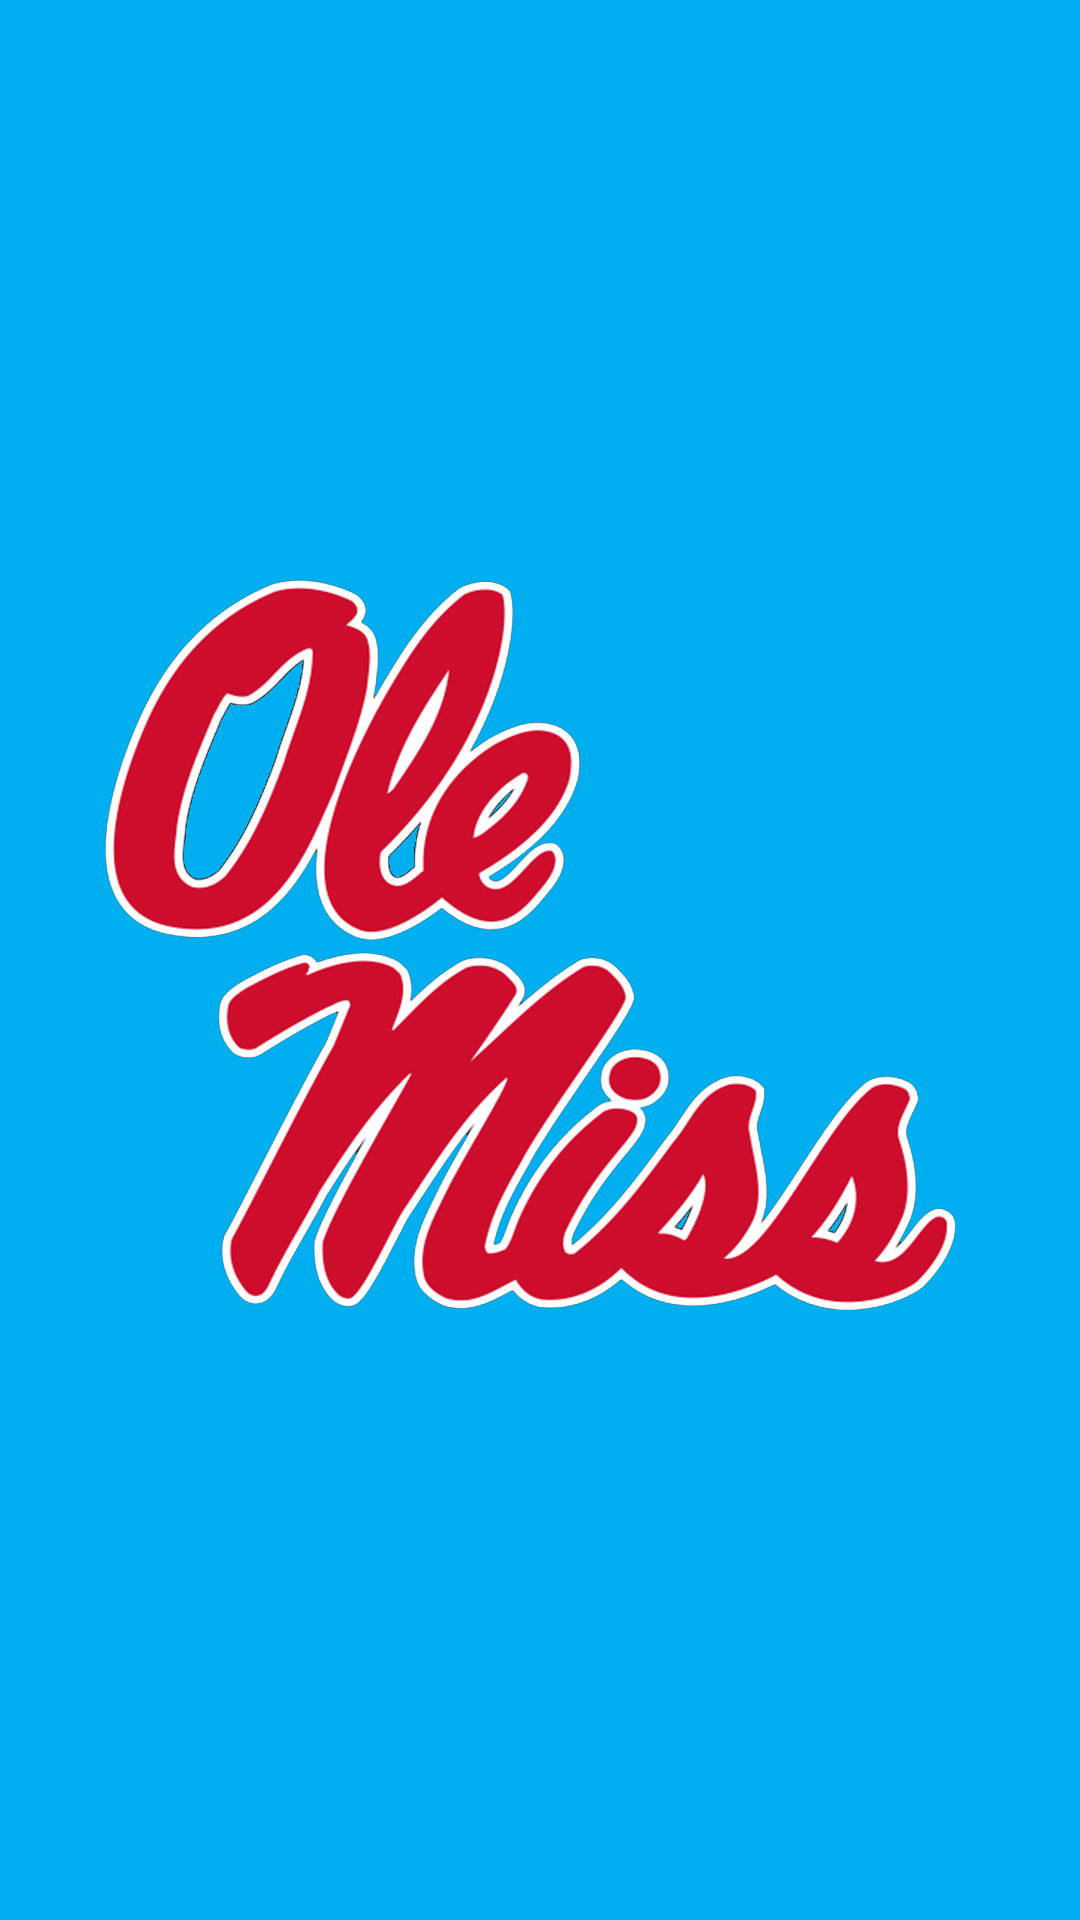 Usc iphone wallpaper 64 images - Ole miss wallpaper for iphone ...